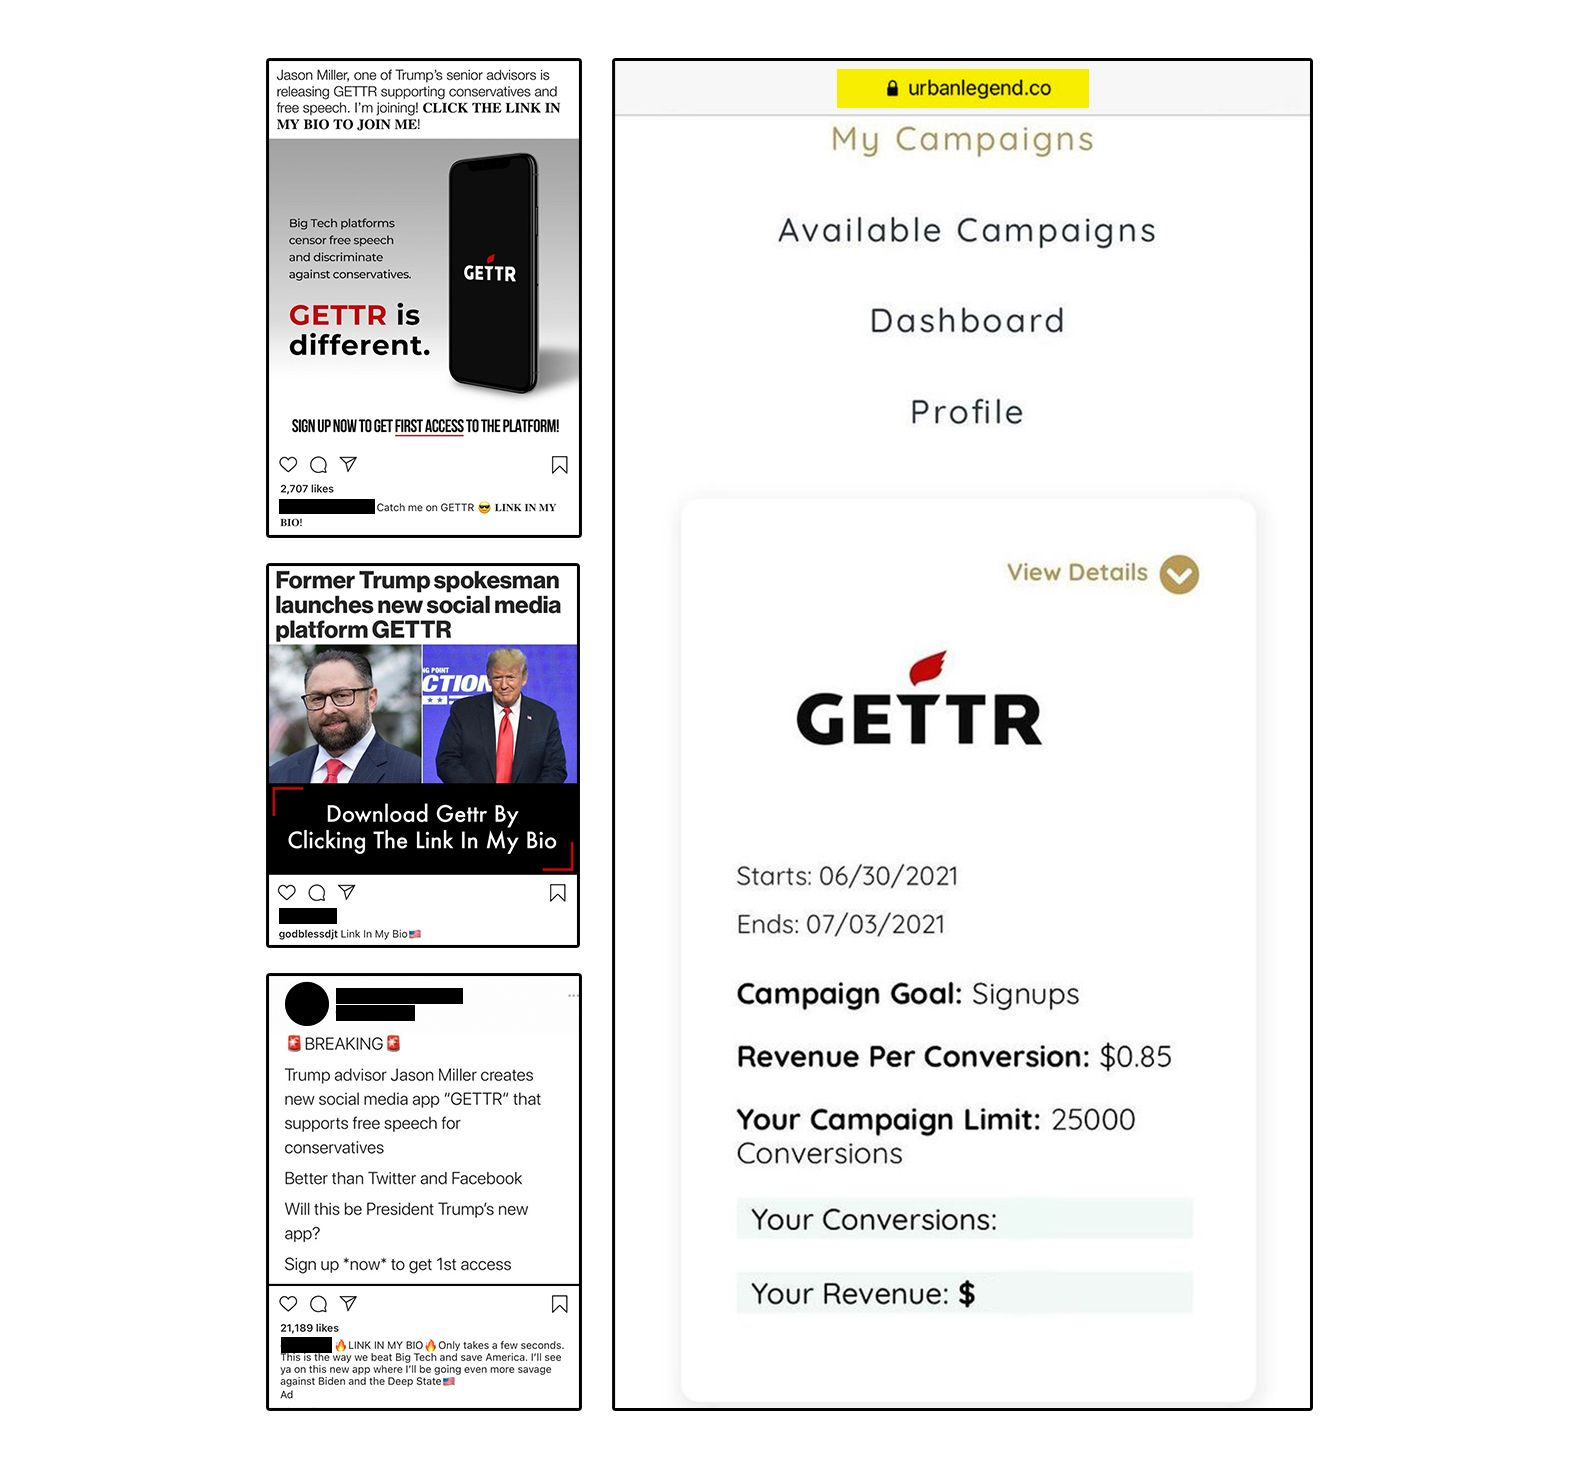 Memers could earn up to$21,250 through the GETTR ad campaign in June and July, which was among those coordinated by Urb